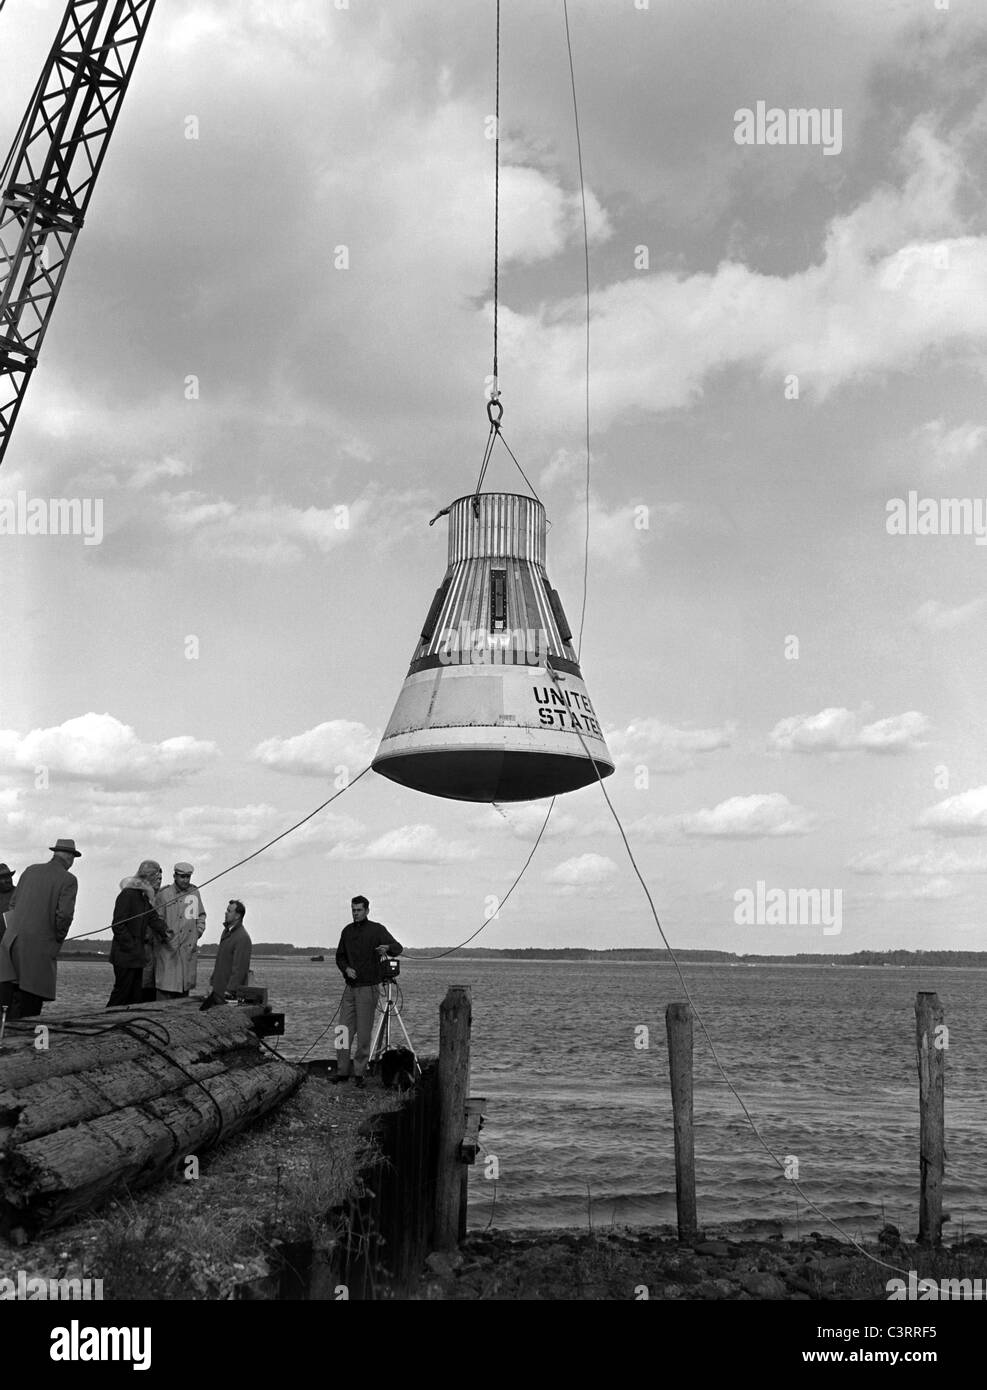 Little Joe Drop Test. Water drop and recovery from shore-based crane at Langley's Back River. - Stock Image